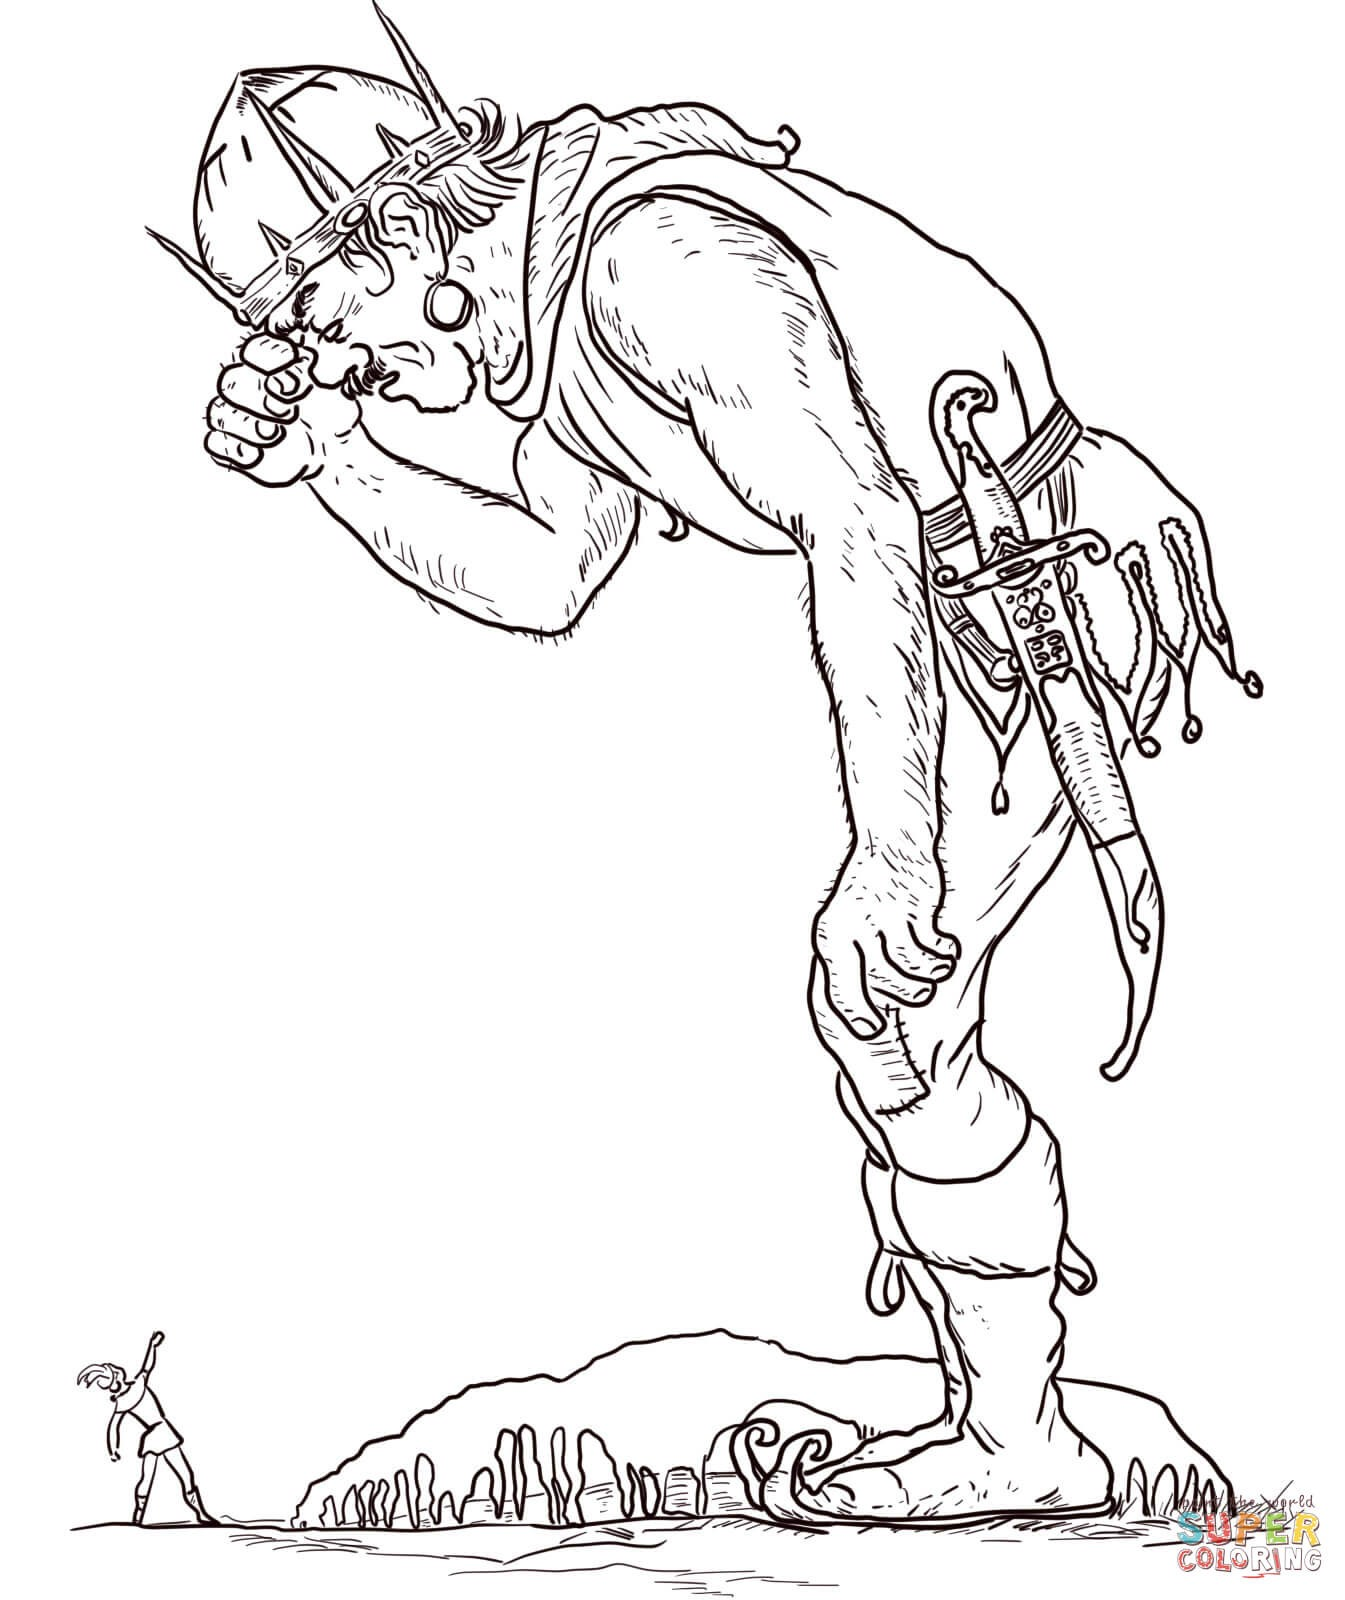 Jack And The Beanstalk Drawing at GetDrawings.com | Free for ...